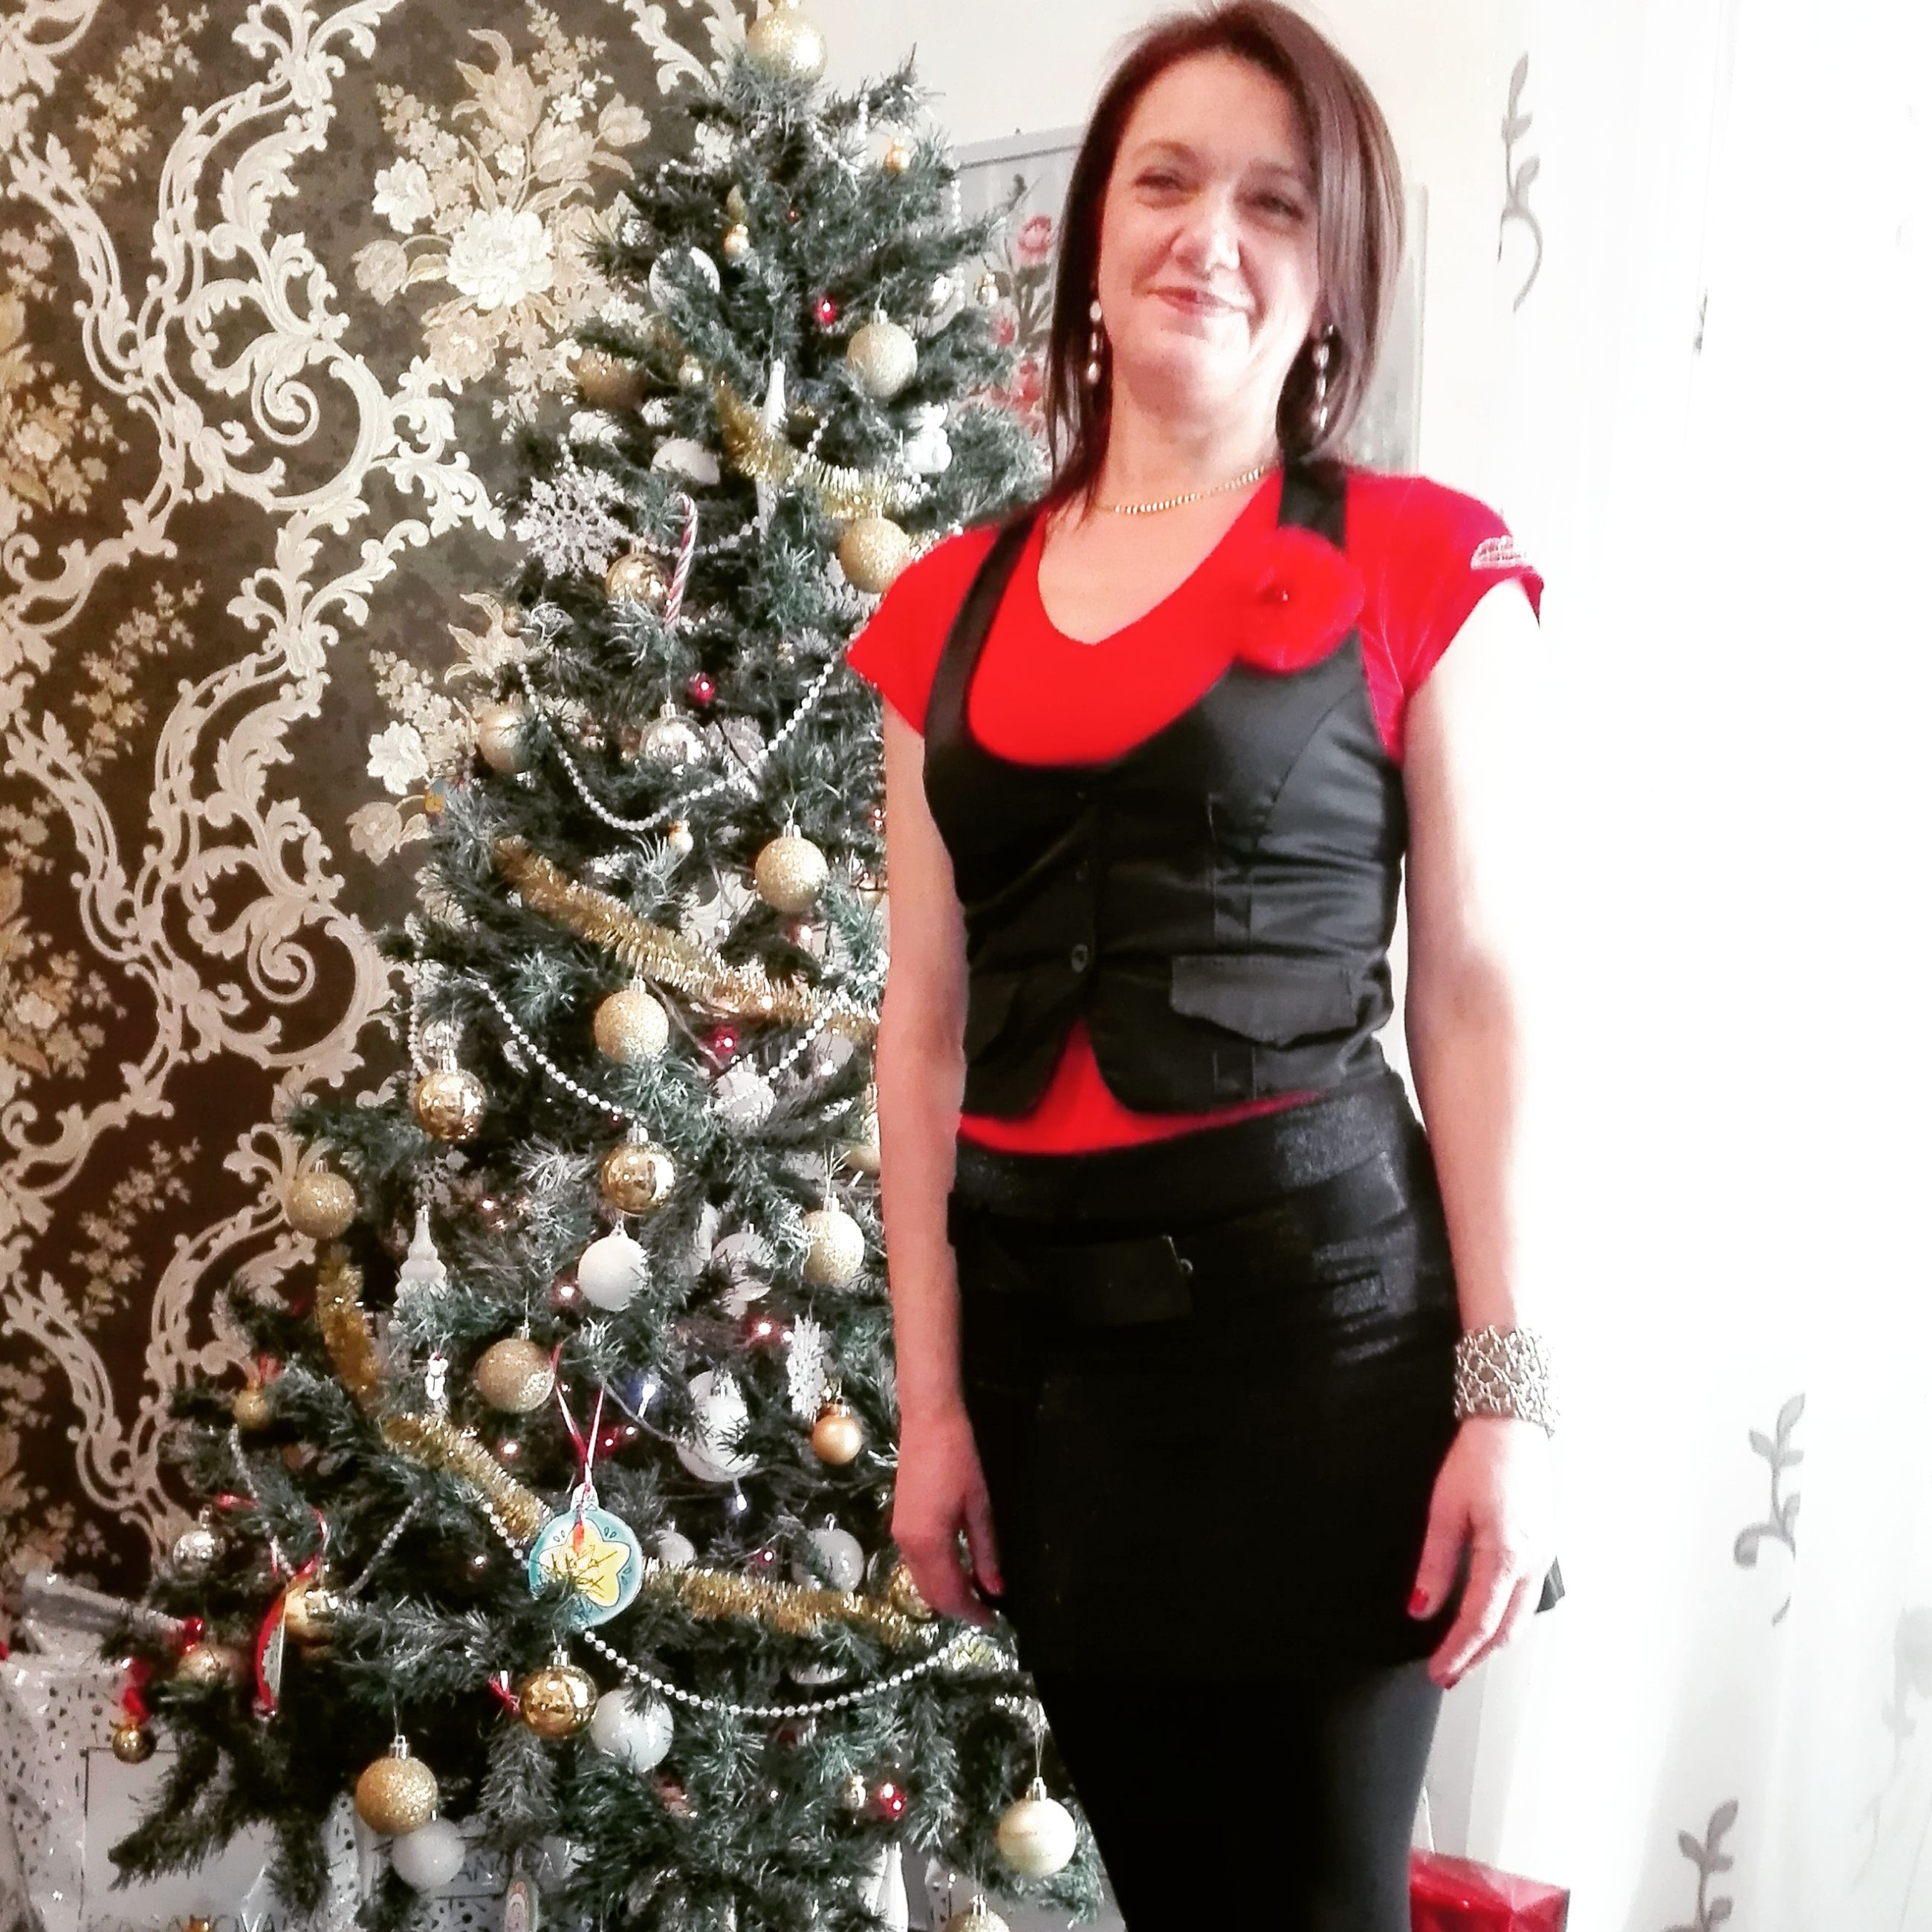 portrait, three quarter length, looking at camera, one person, tree, christmas, smiling, standing, one woman only, adults only, confidence, happiness, only women, front view, christmas tree, indoors, leisure activity, people, young women, adult, christmas ornament, beautiful woman, young adult, one young woman only, day